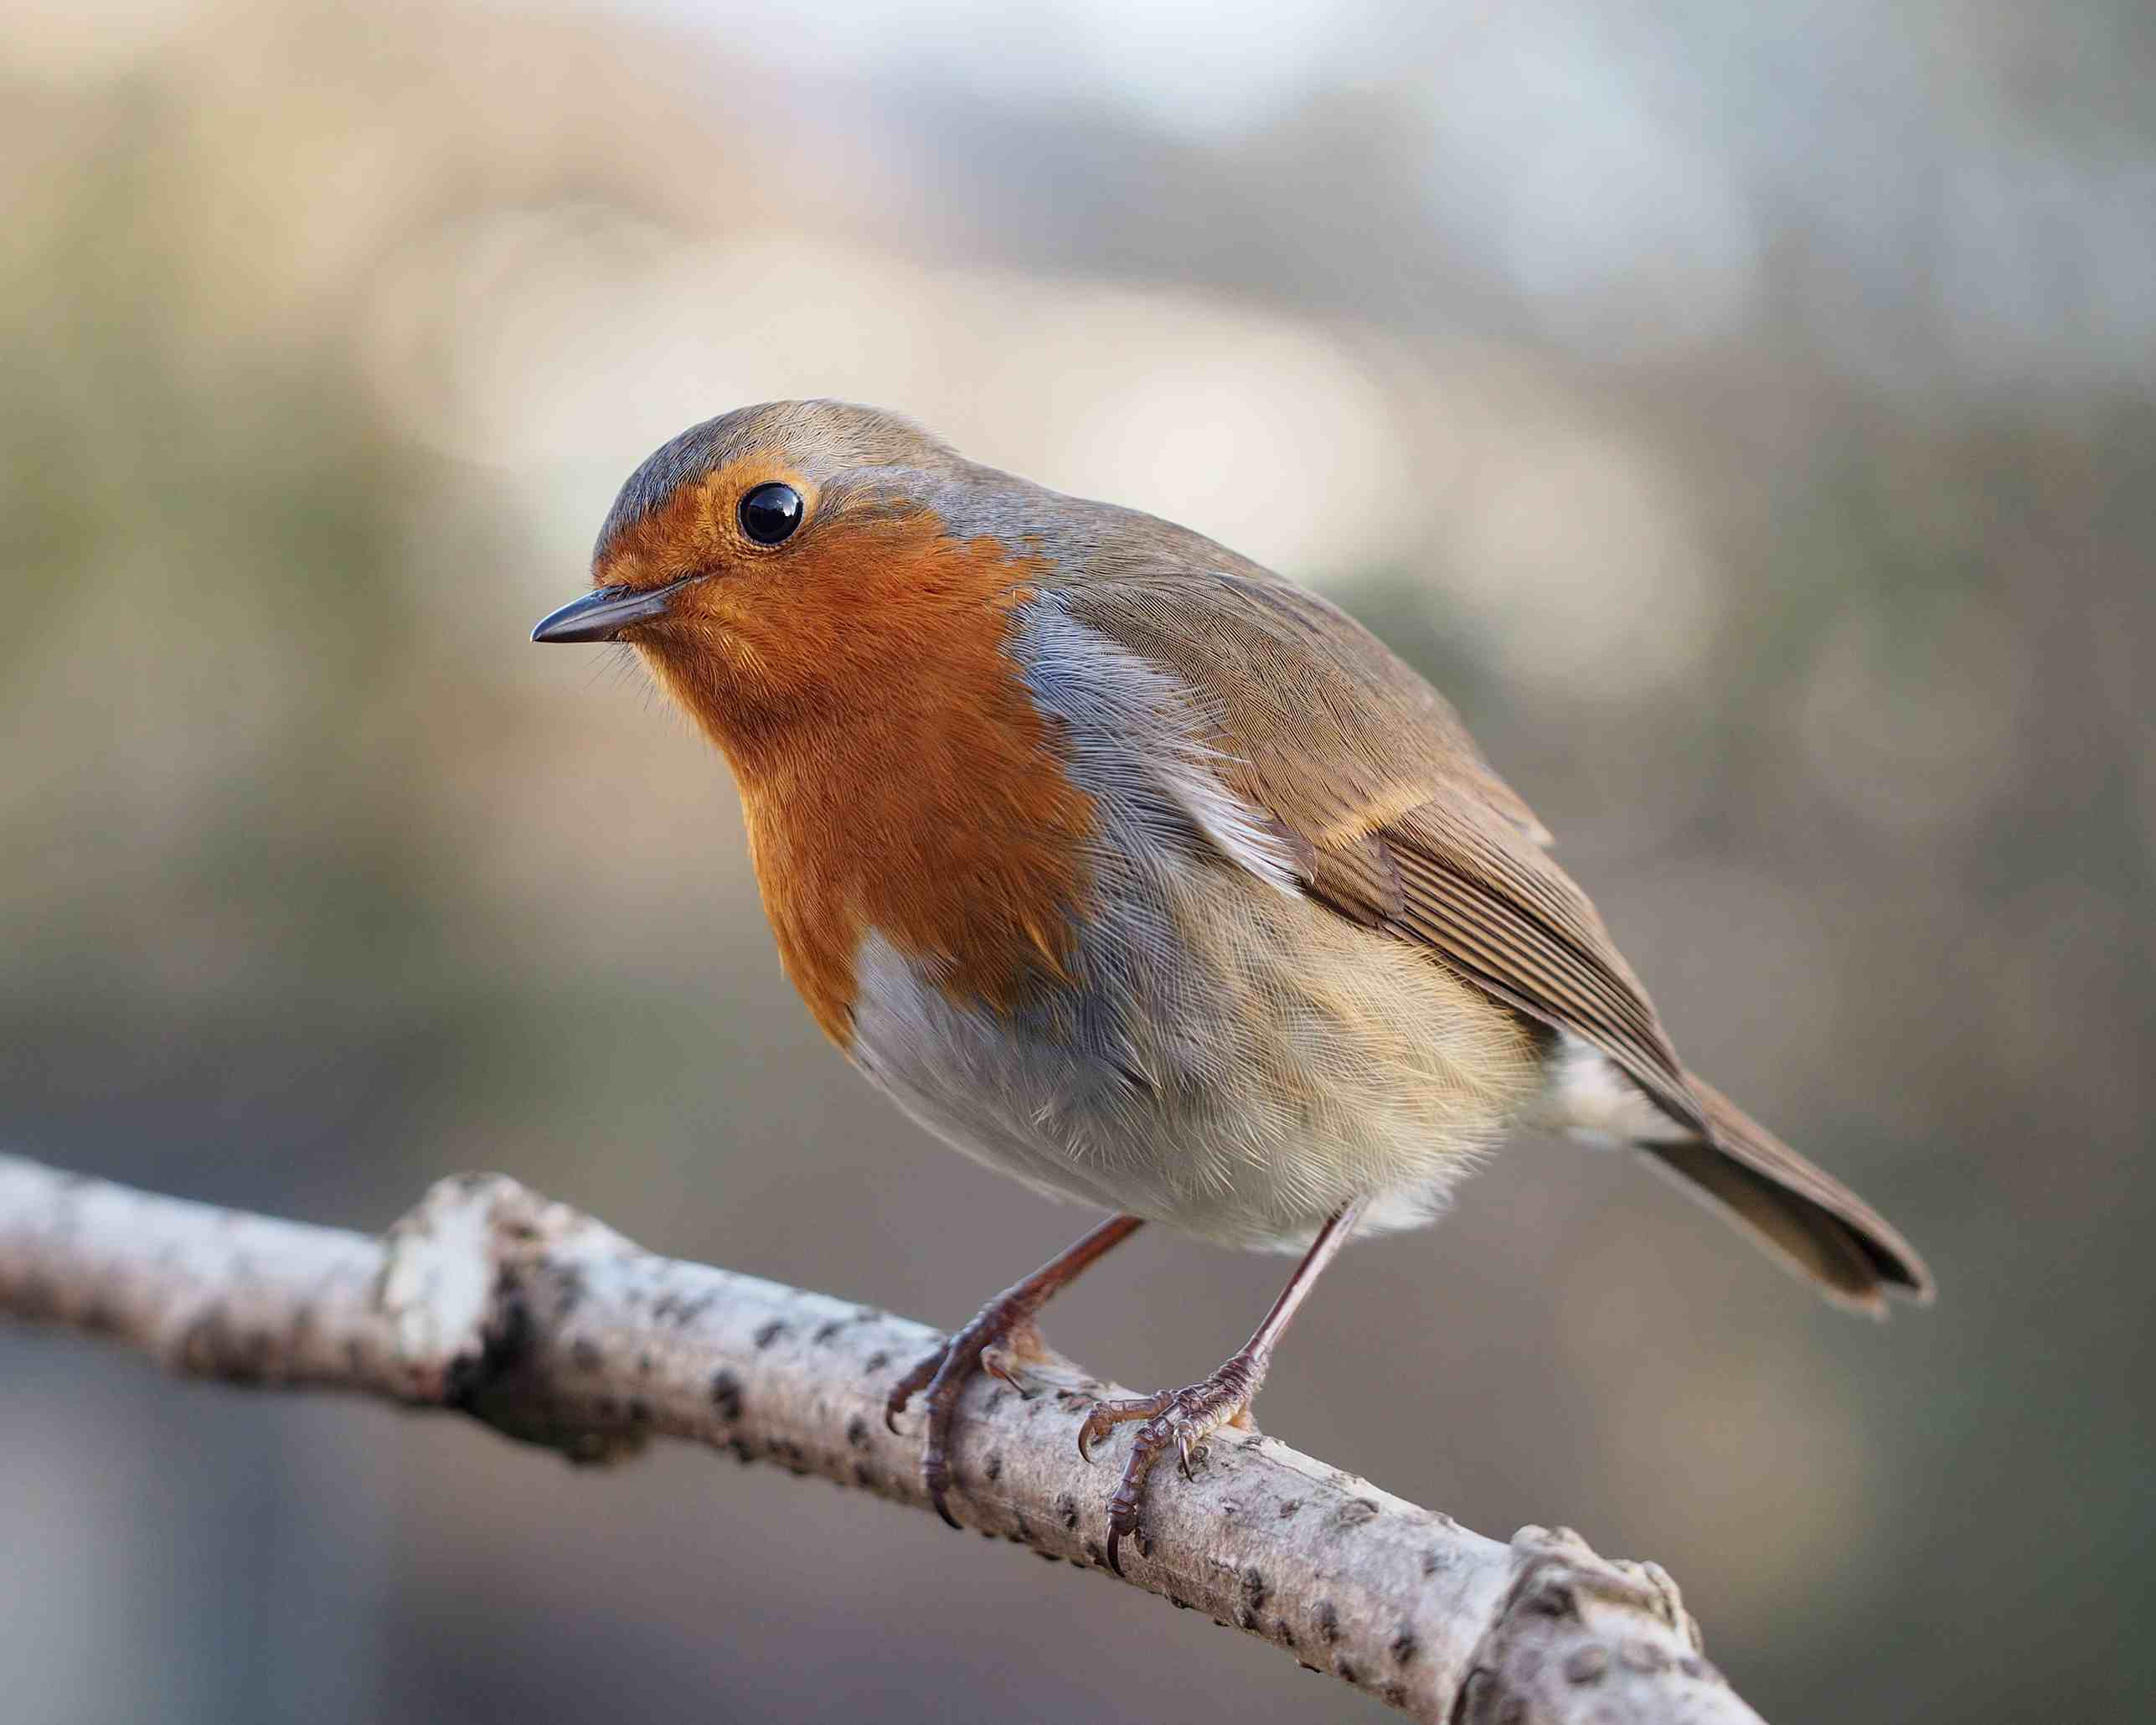 European robin with head cocked sitting on a branch.